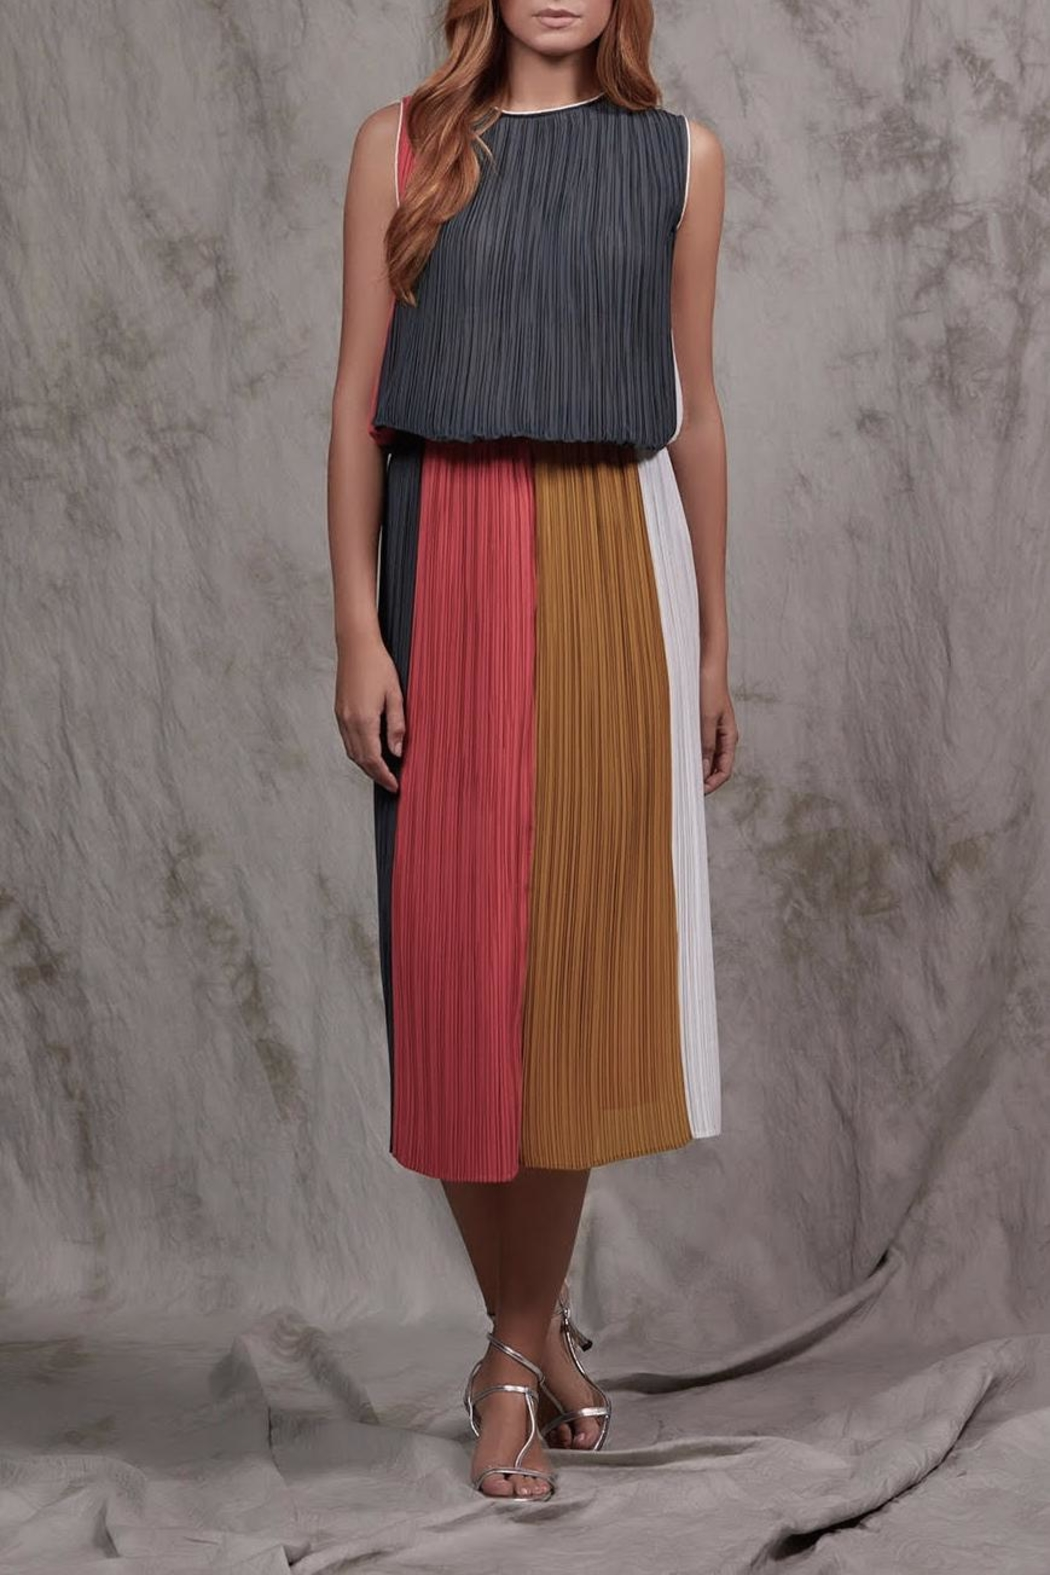 nisse Rialto Pleated Skirt - Main Image